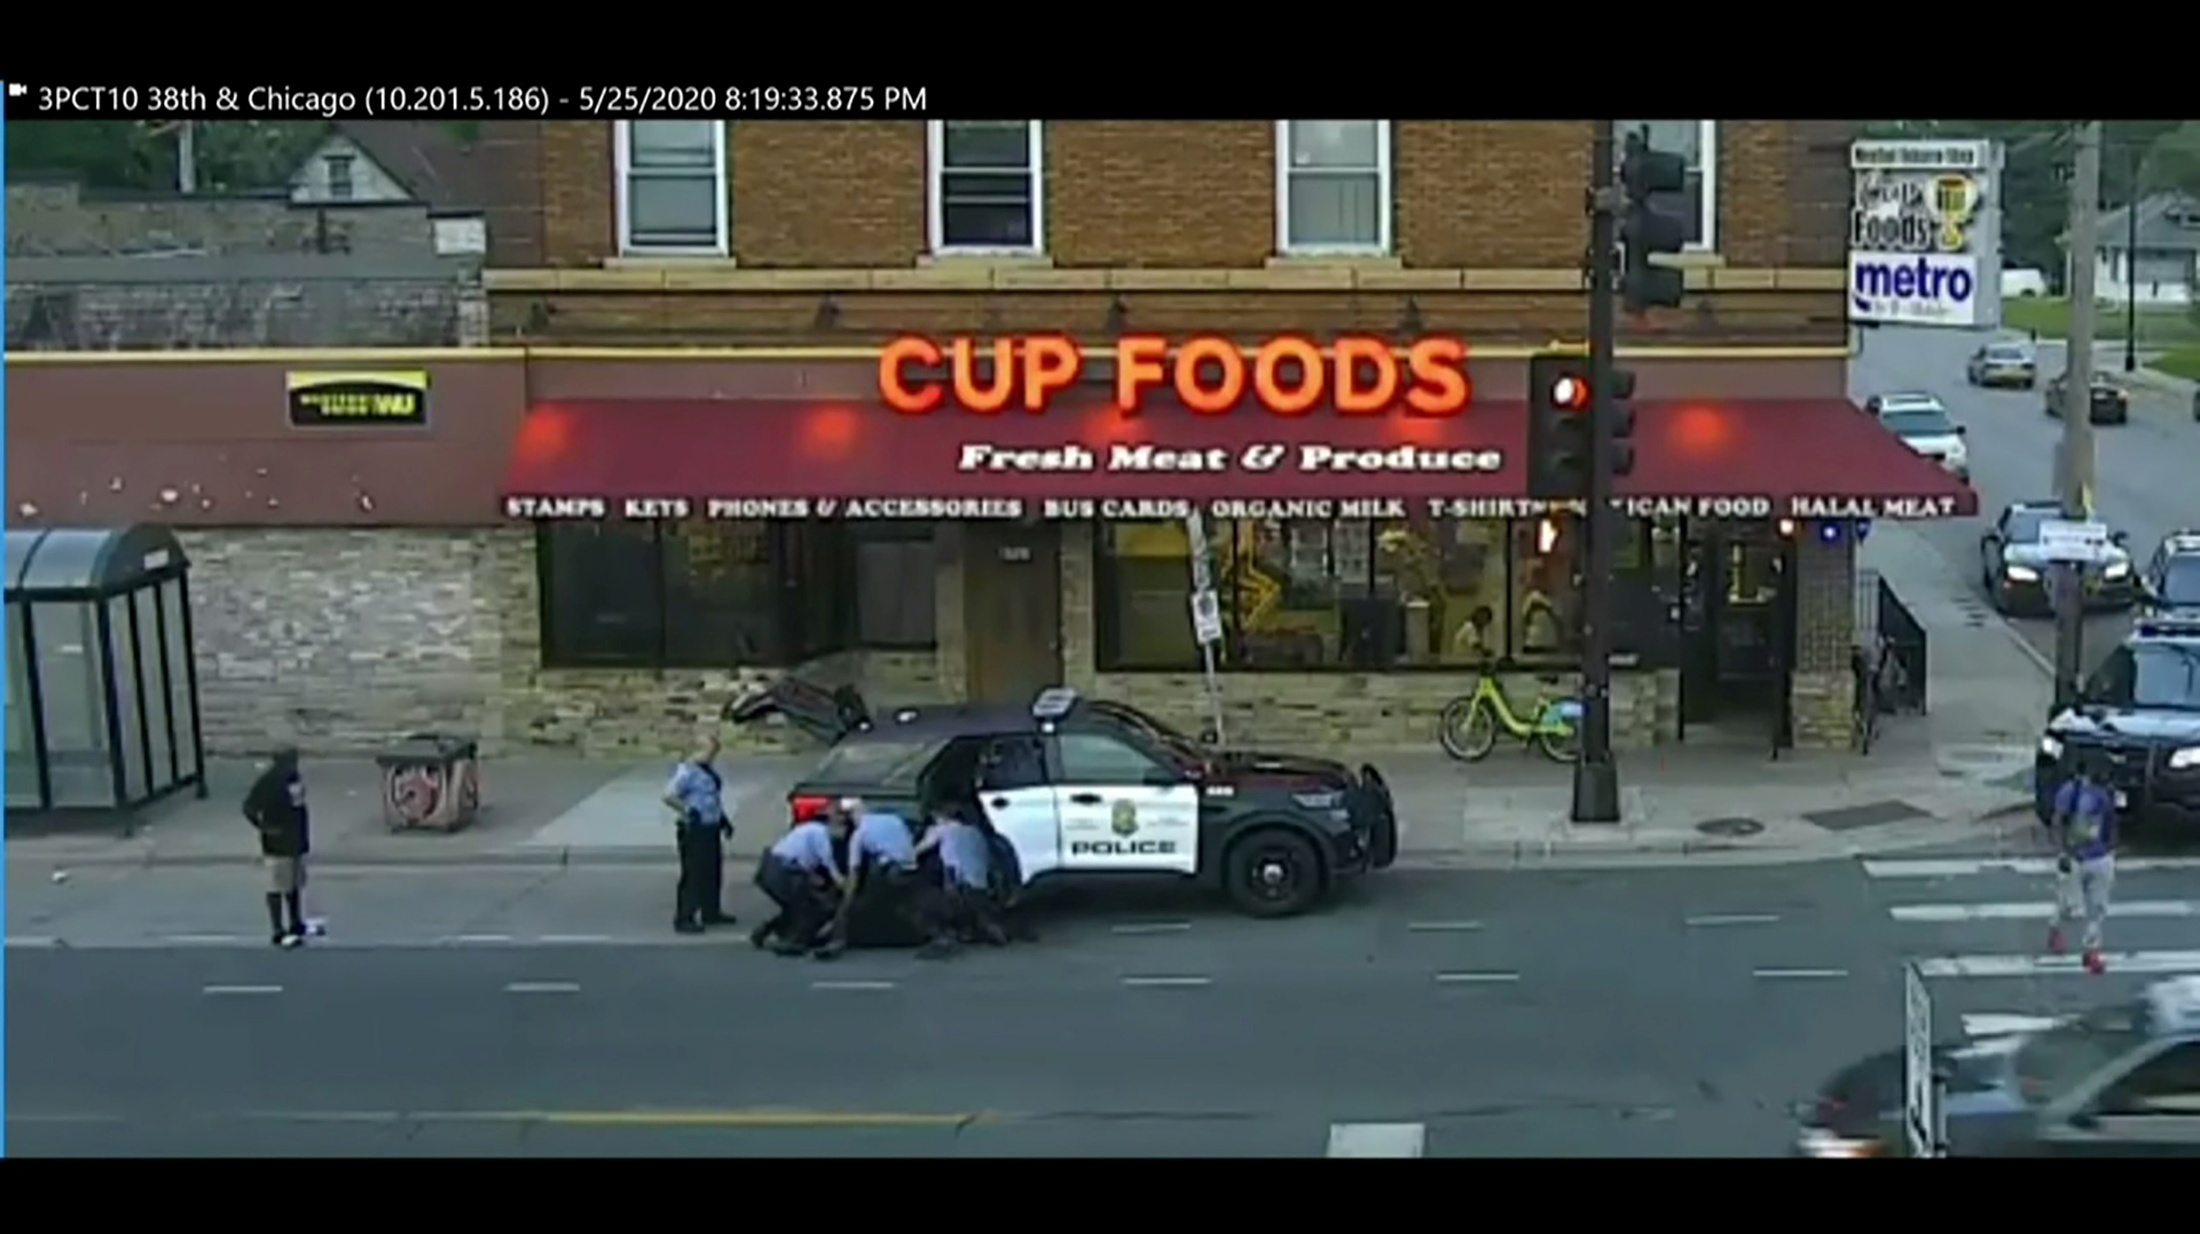 Minneapolis police officers arrest George Floyd in a surveillance video taken May 25, 2020 and shown to jurors during the trial of former Minneapolis police officer Derek Chauvin for second-degree murder, third-degree murder and second-degree manslaughter in the death of George Floyd in Minneapolis, Minnesota, U.S. March 29, 2021 in a still image from video.  Pool via REUTERS